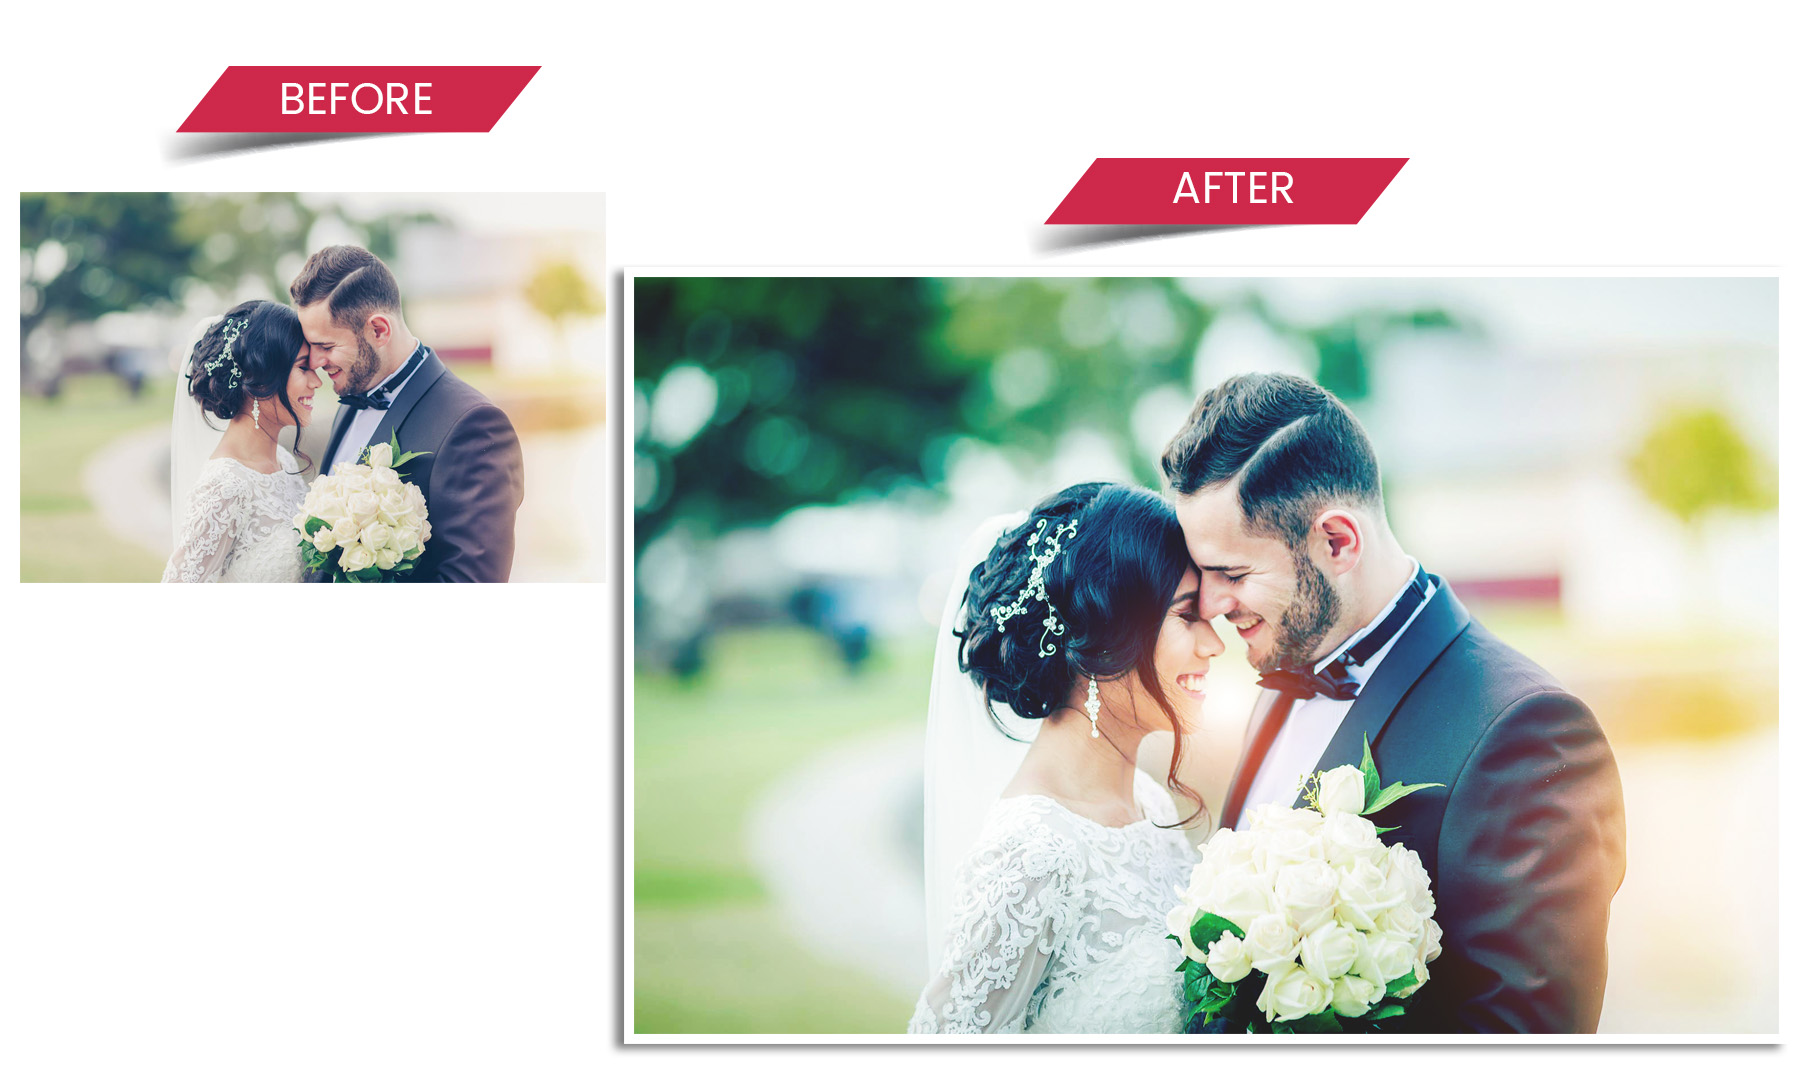 wedding photography editing services